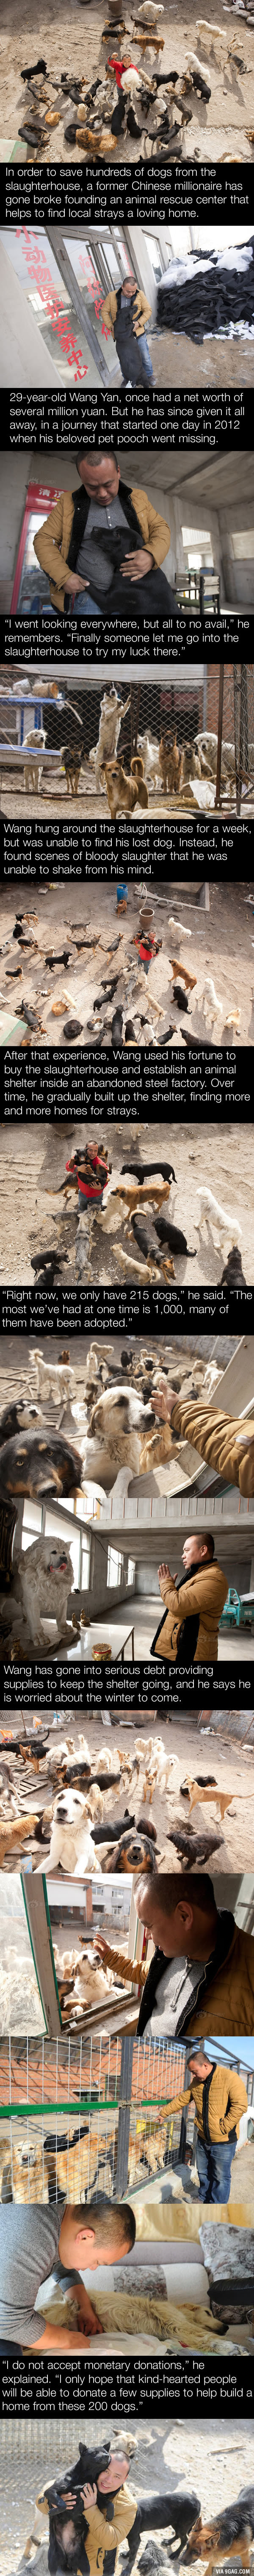 Former millionaire in China goes into debt rescuing thousands of stray dogs